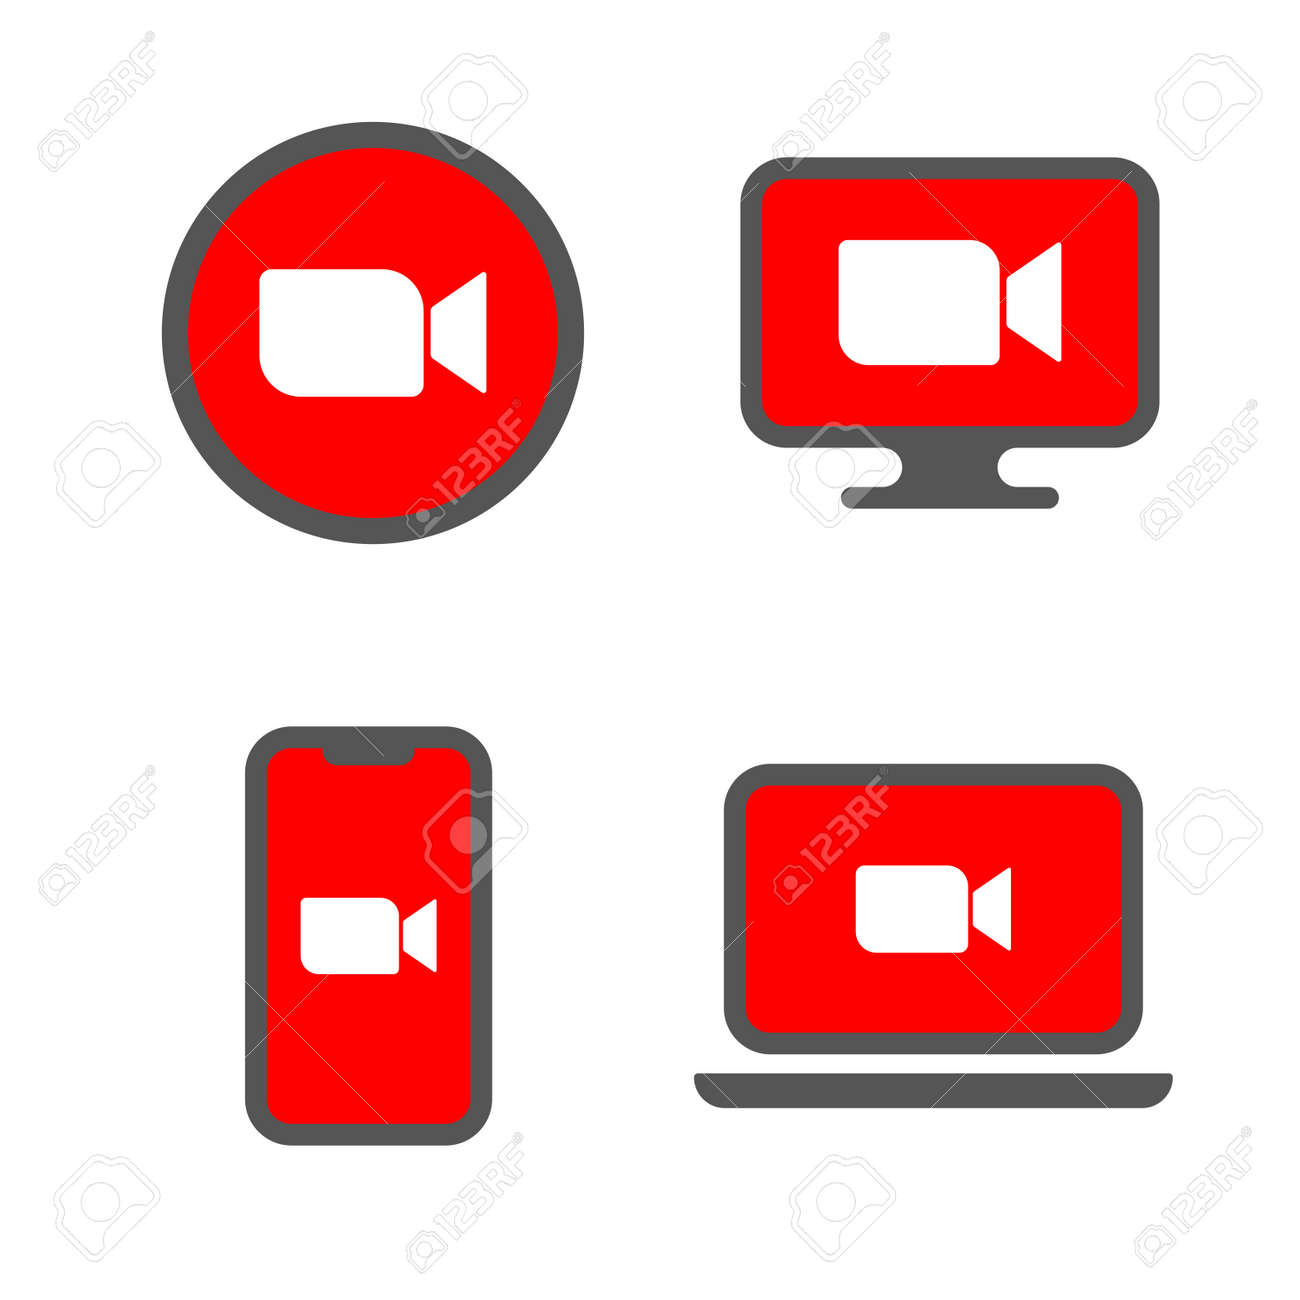 Online Virtual Meetings, Work from Home. Teleconference TV Video Conference Webinars or Remote Working. Enterprise Web Cloud Service Software Concept. EPS 10 - 158148462